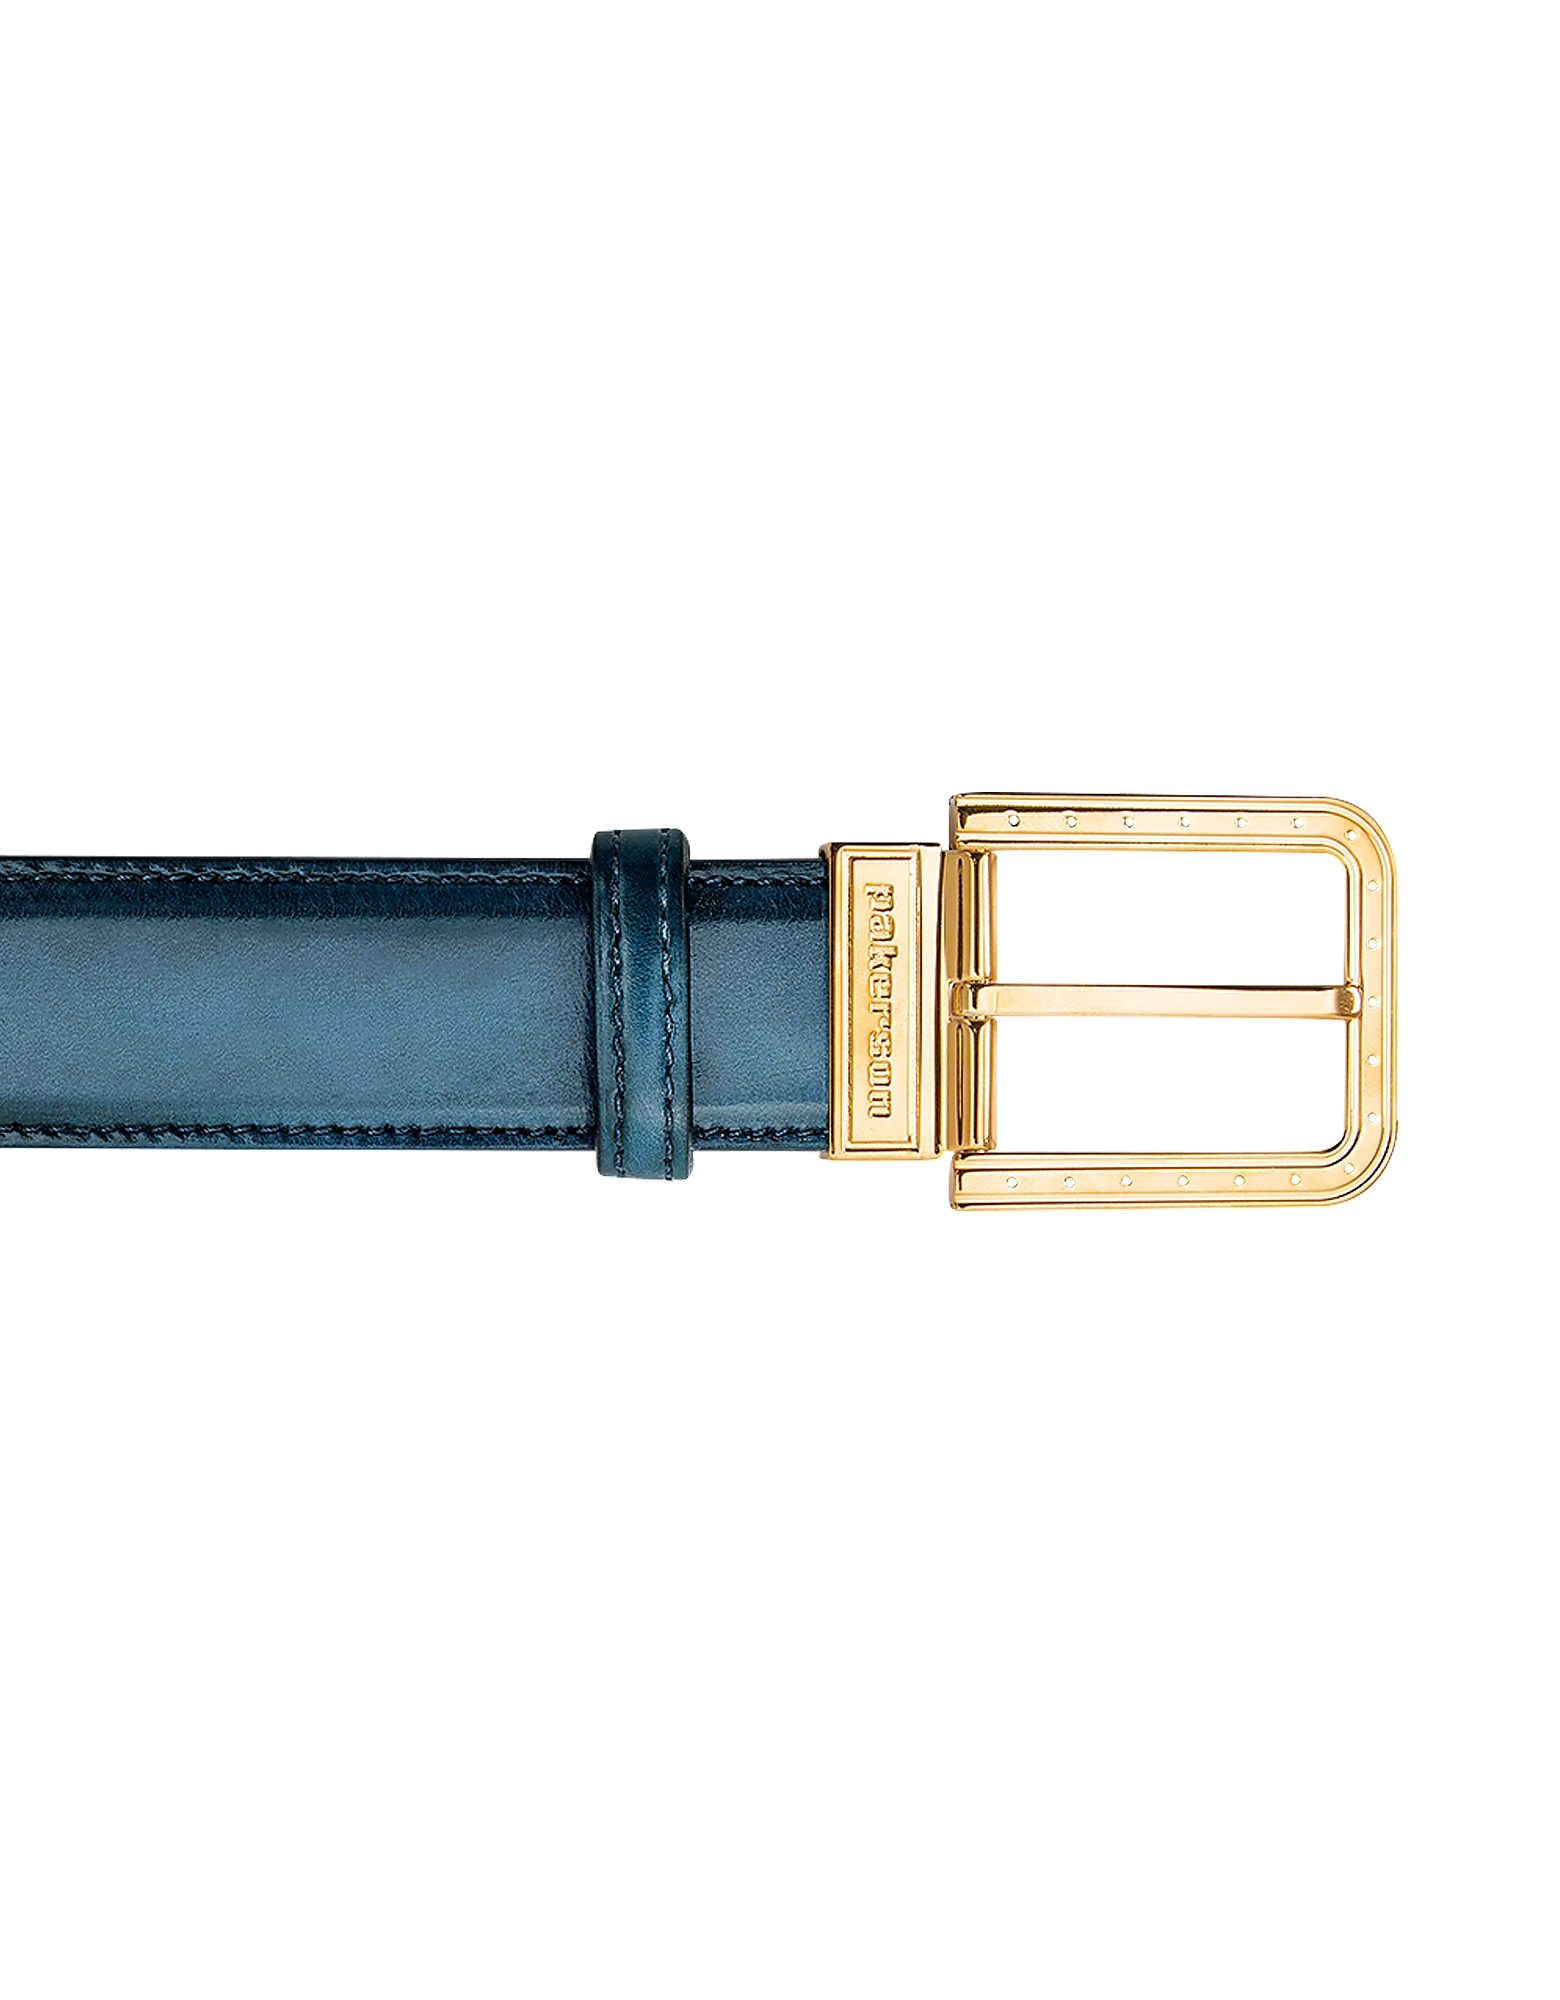 Pakerson Designer Men's Belts, Ripa Blue Island Italian Leather Belt w/ Gold Buckle